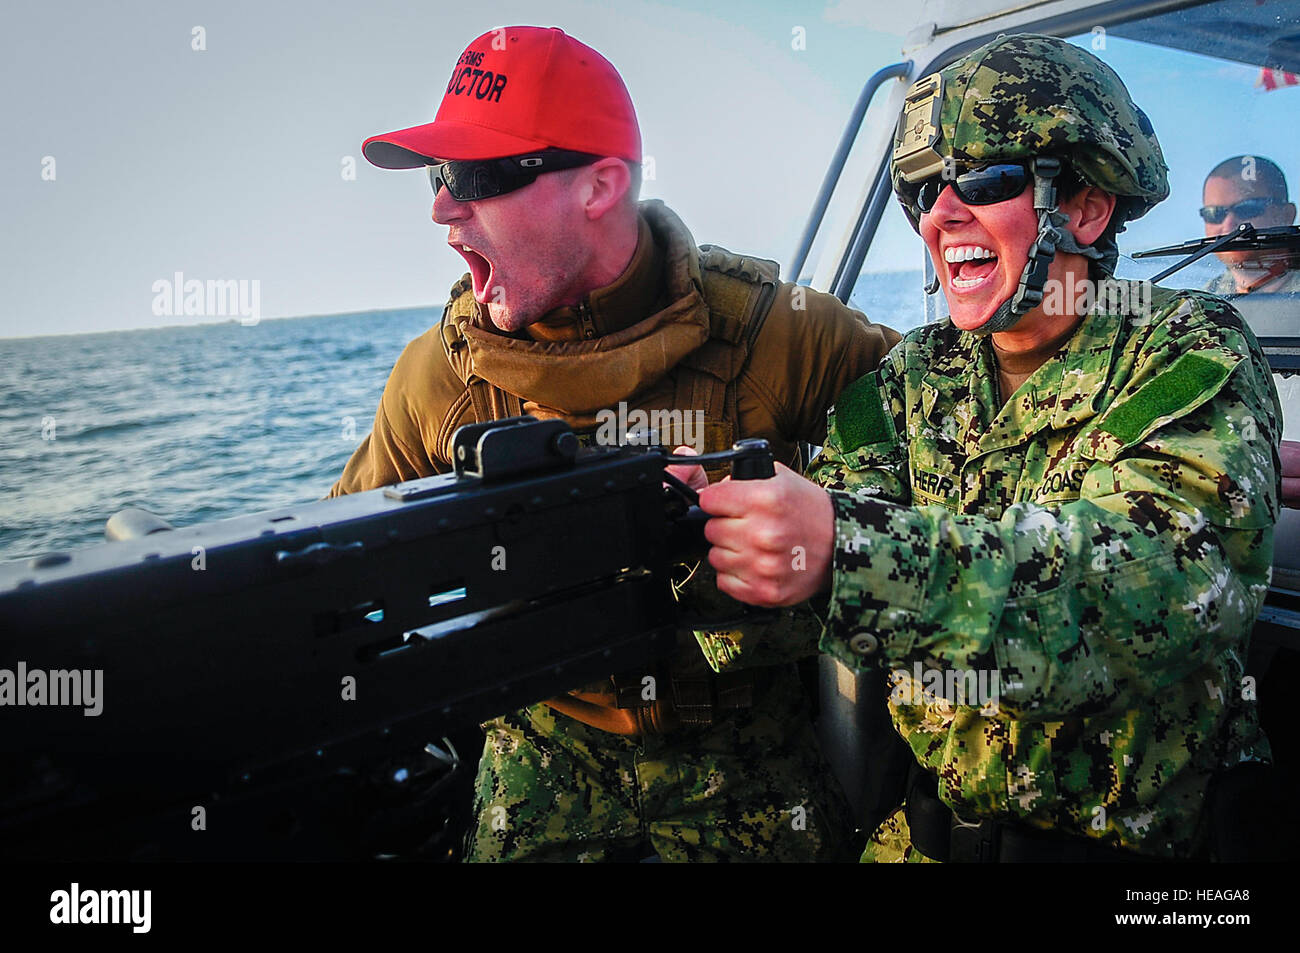 Petty Officer 1st Class Nicholas Sturges (left), gunner's mate, and Petty Officer 3rd Class Amanda Herr (right), Stock Photo